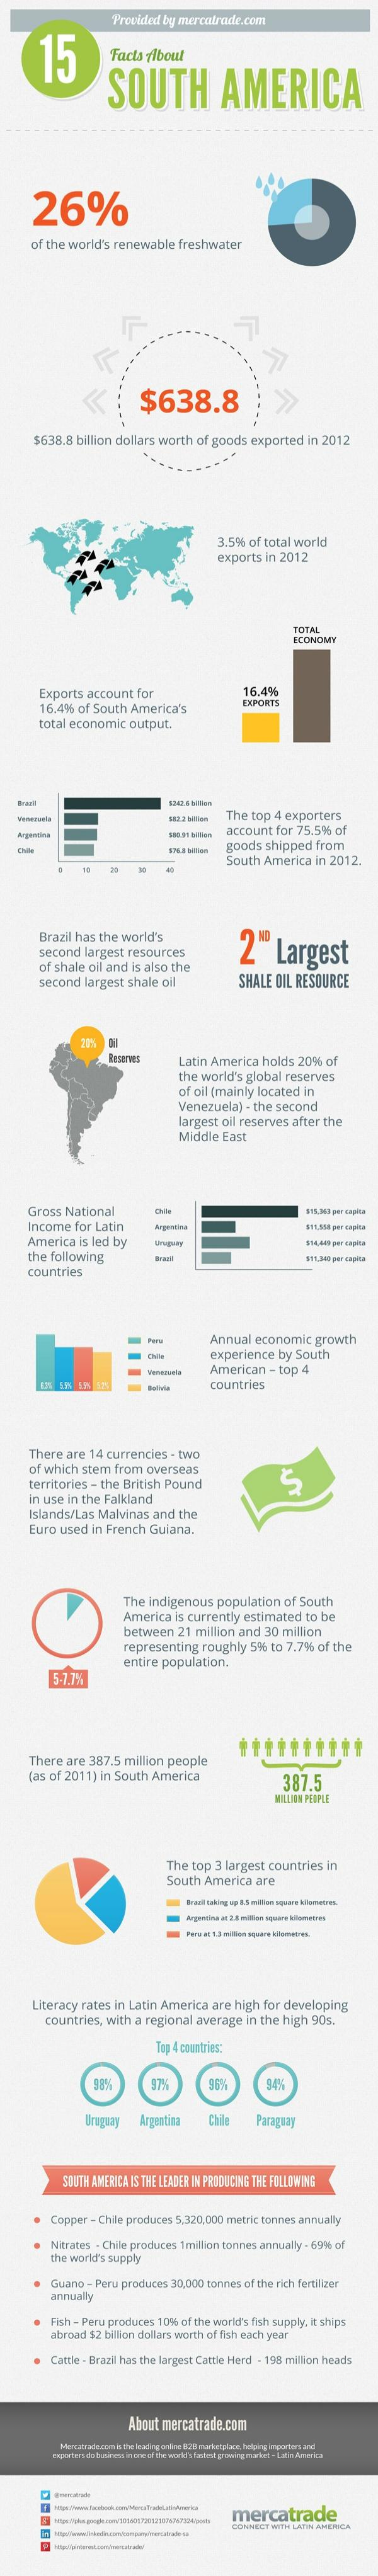 15 Facts About South America